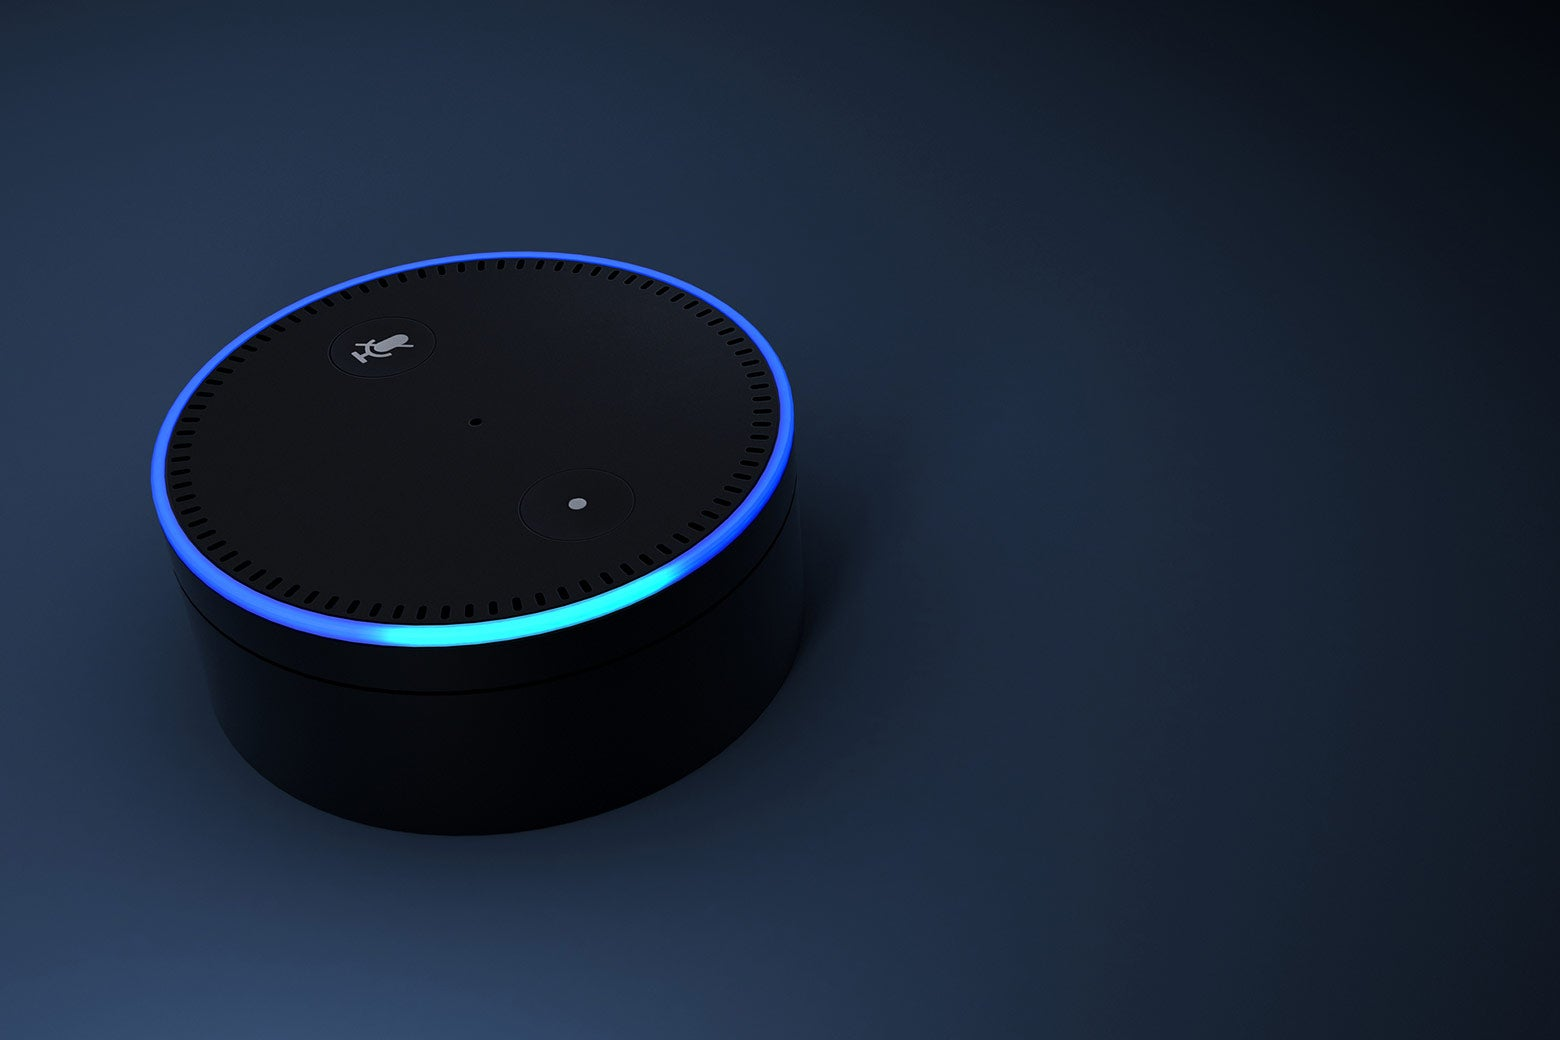 An Echo Dot's ring is lit up, indicating that it's listening.